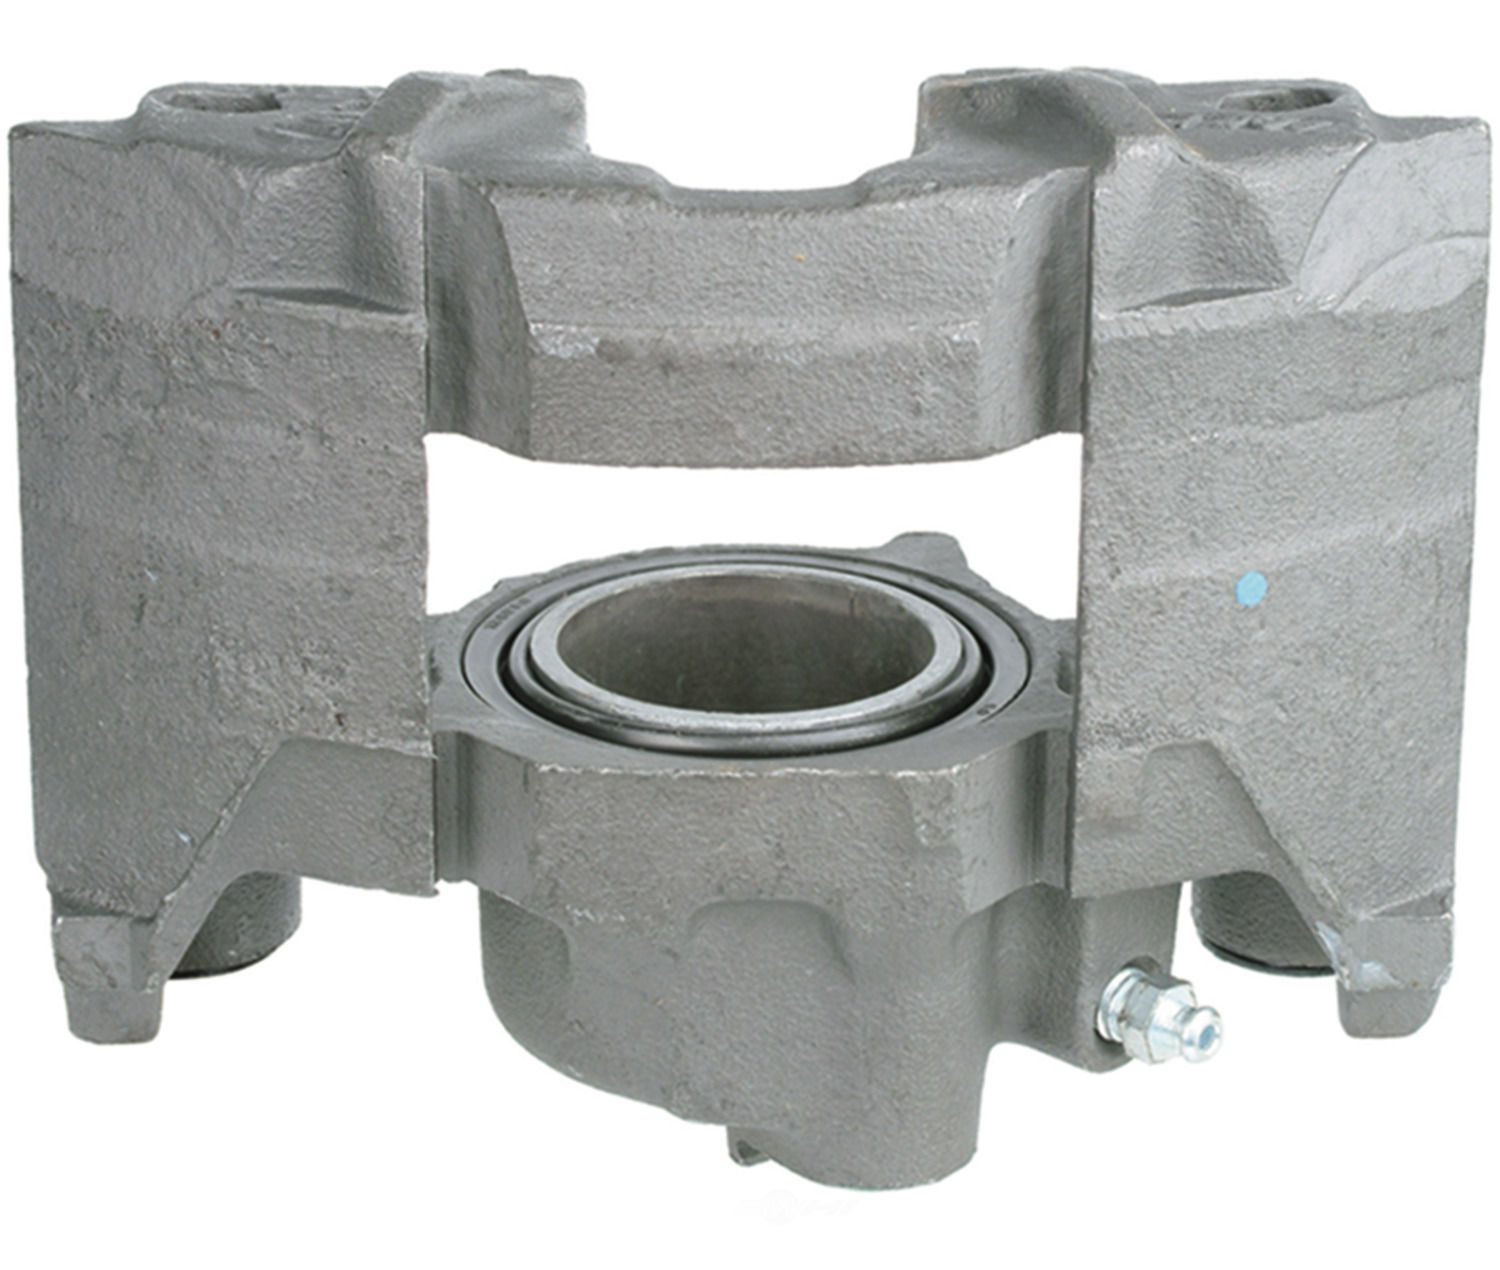 CARDONE/A-1 CARDONE - Remanufactured Friction Choice Caliper (Front Right) - A1C 18-4685